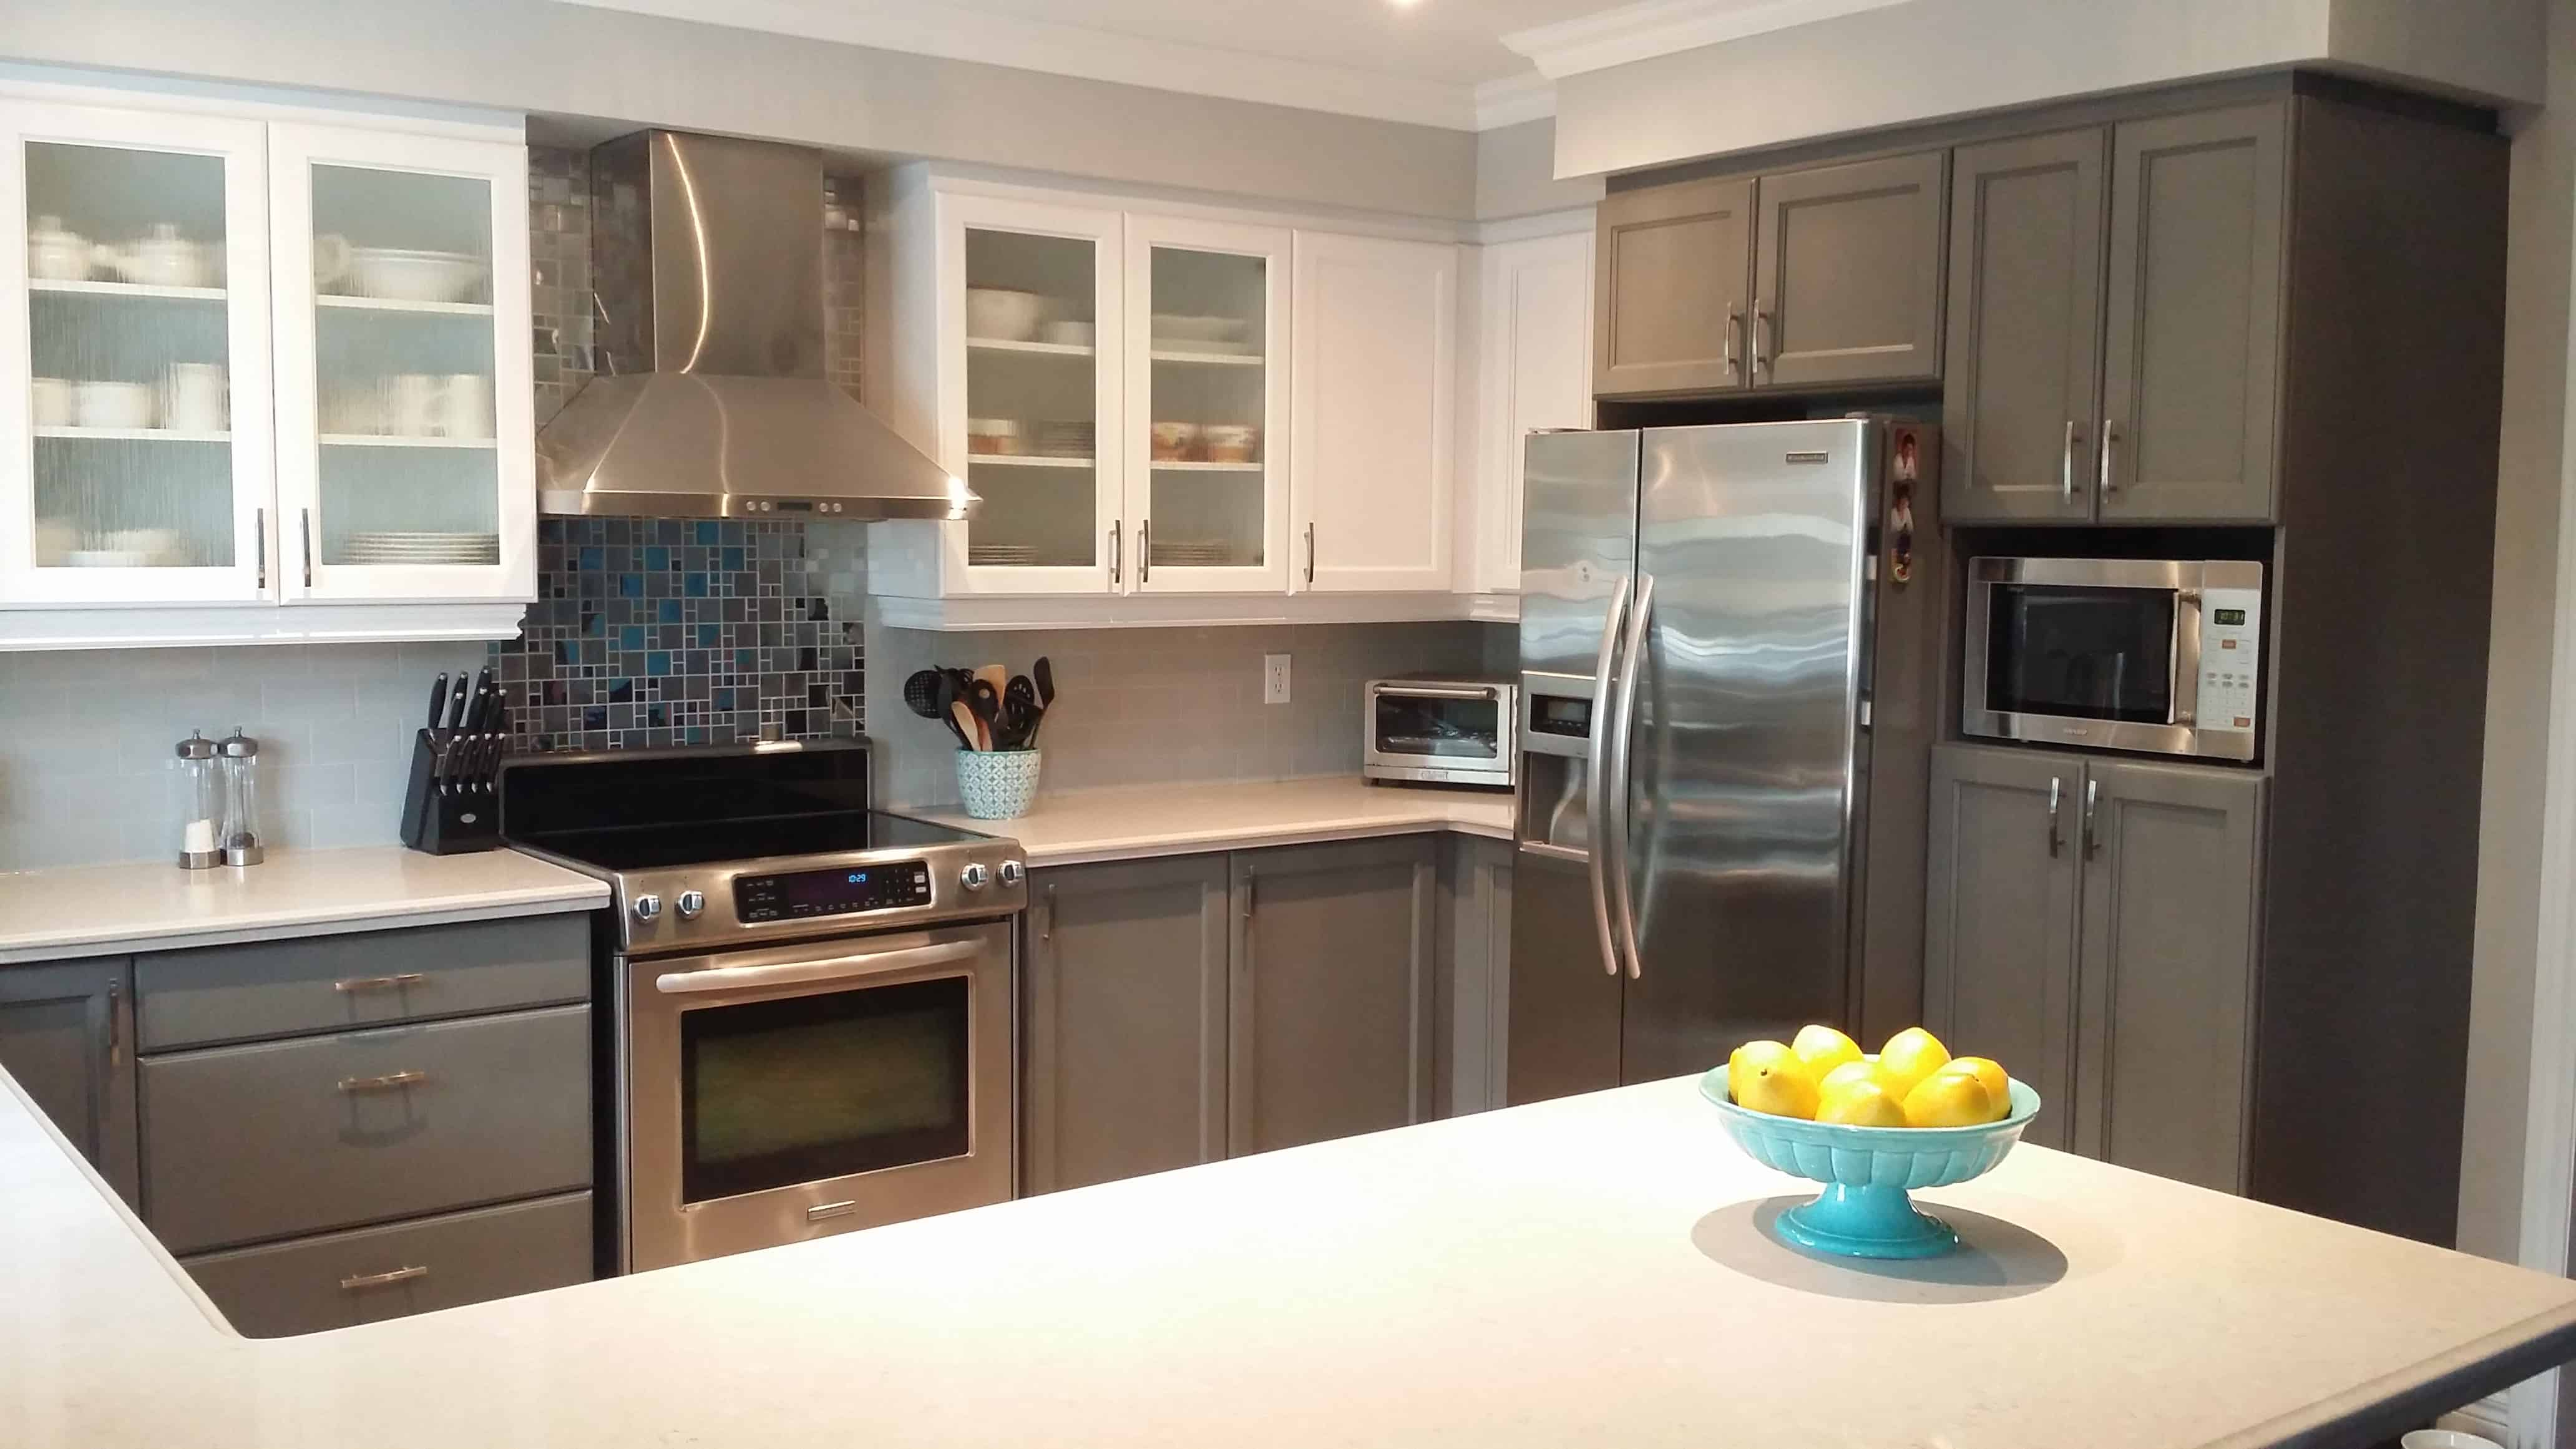 Factors to consider when choosing remodeling your kitchen for Remodeling your kitchen